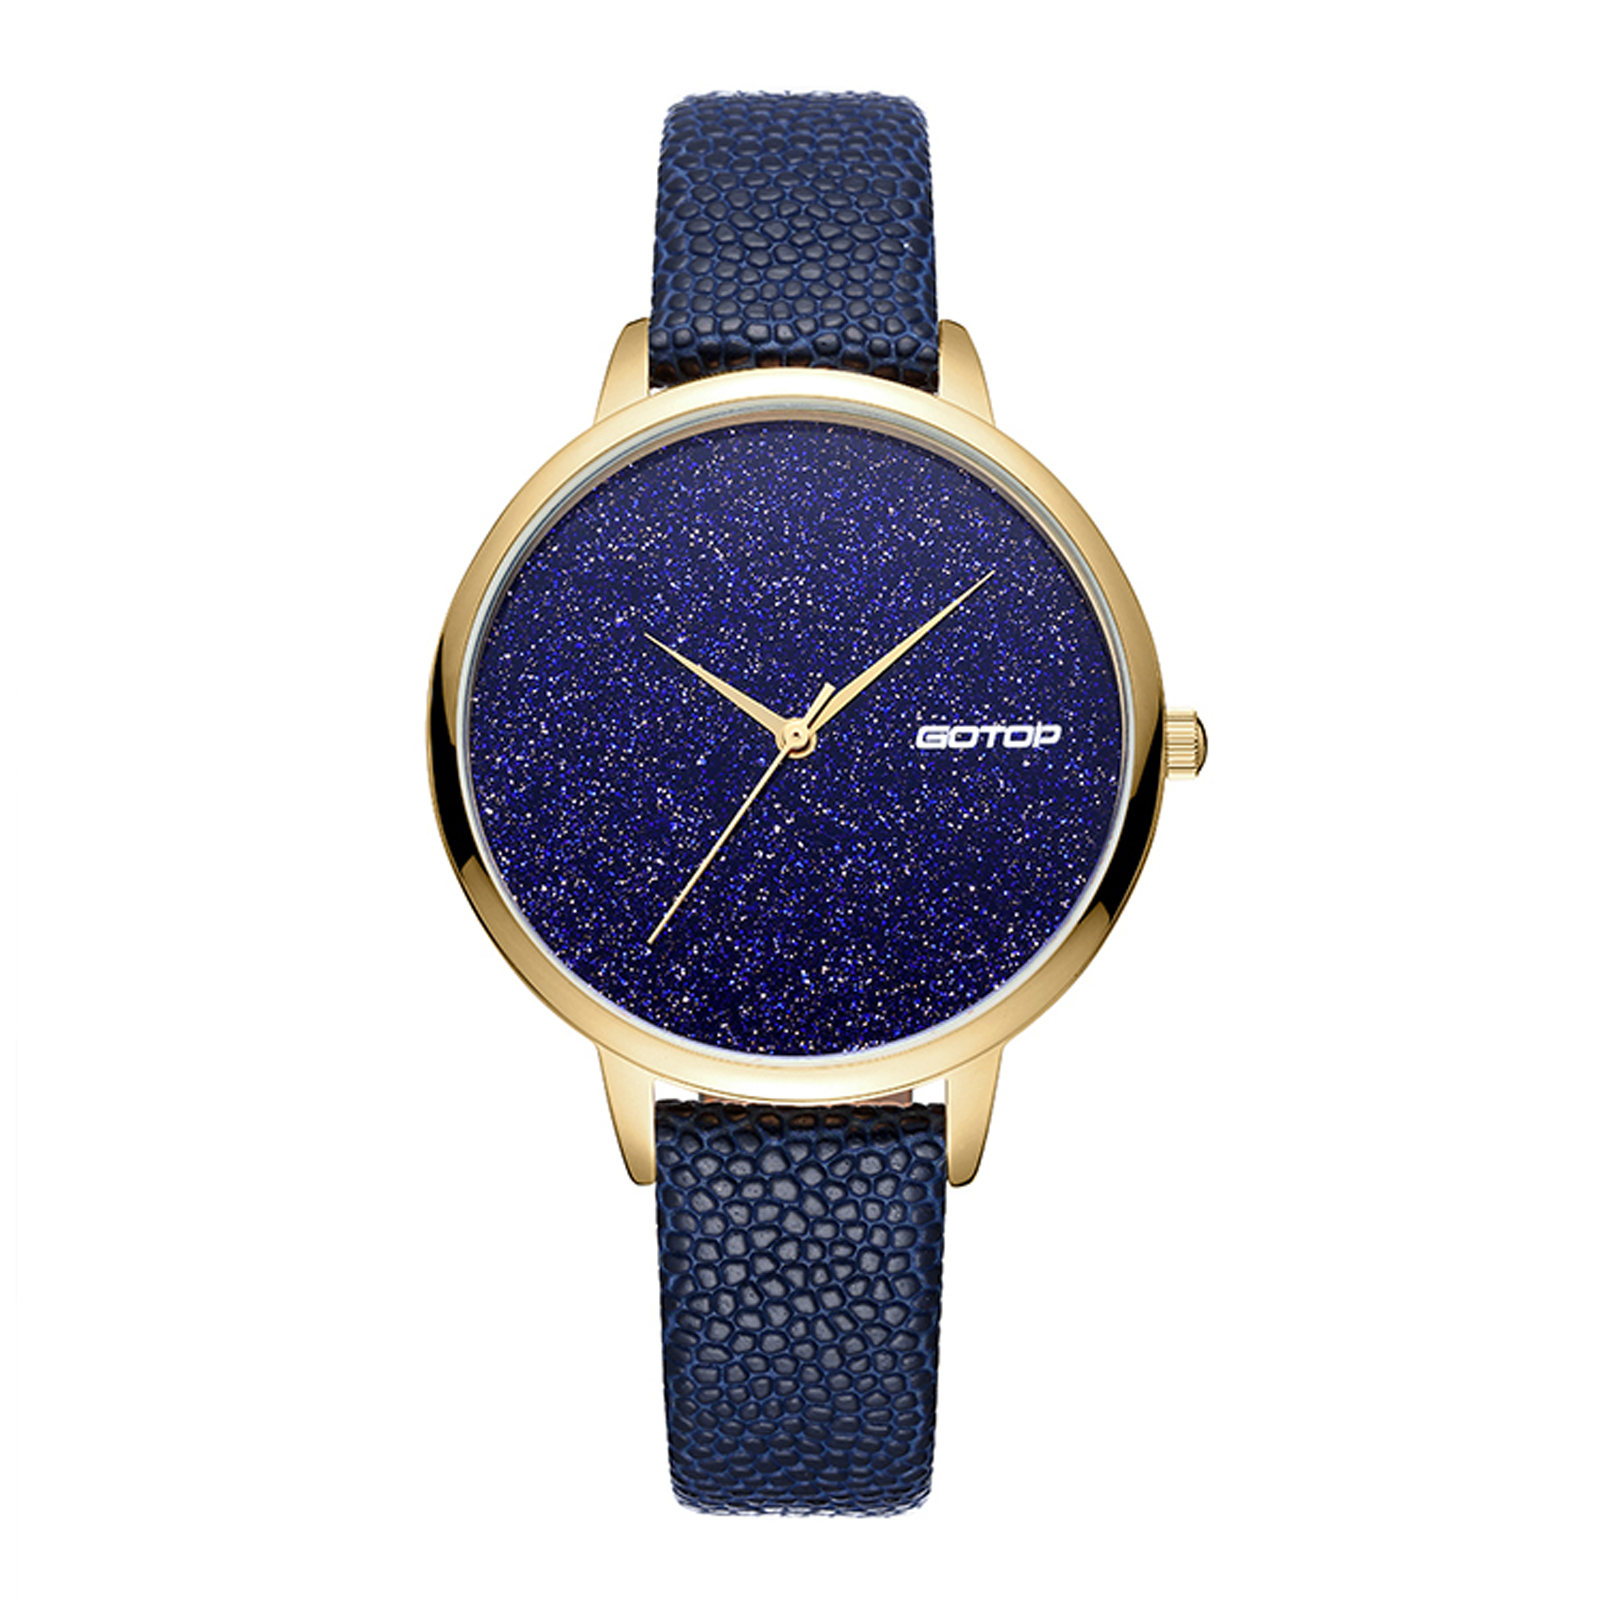 Blue And Gold Women's Watch With Leather Strap